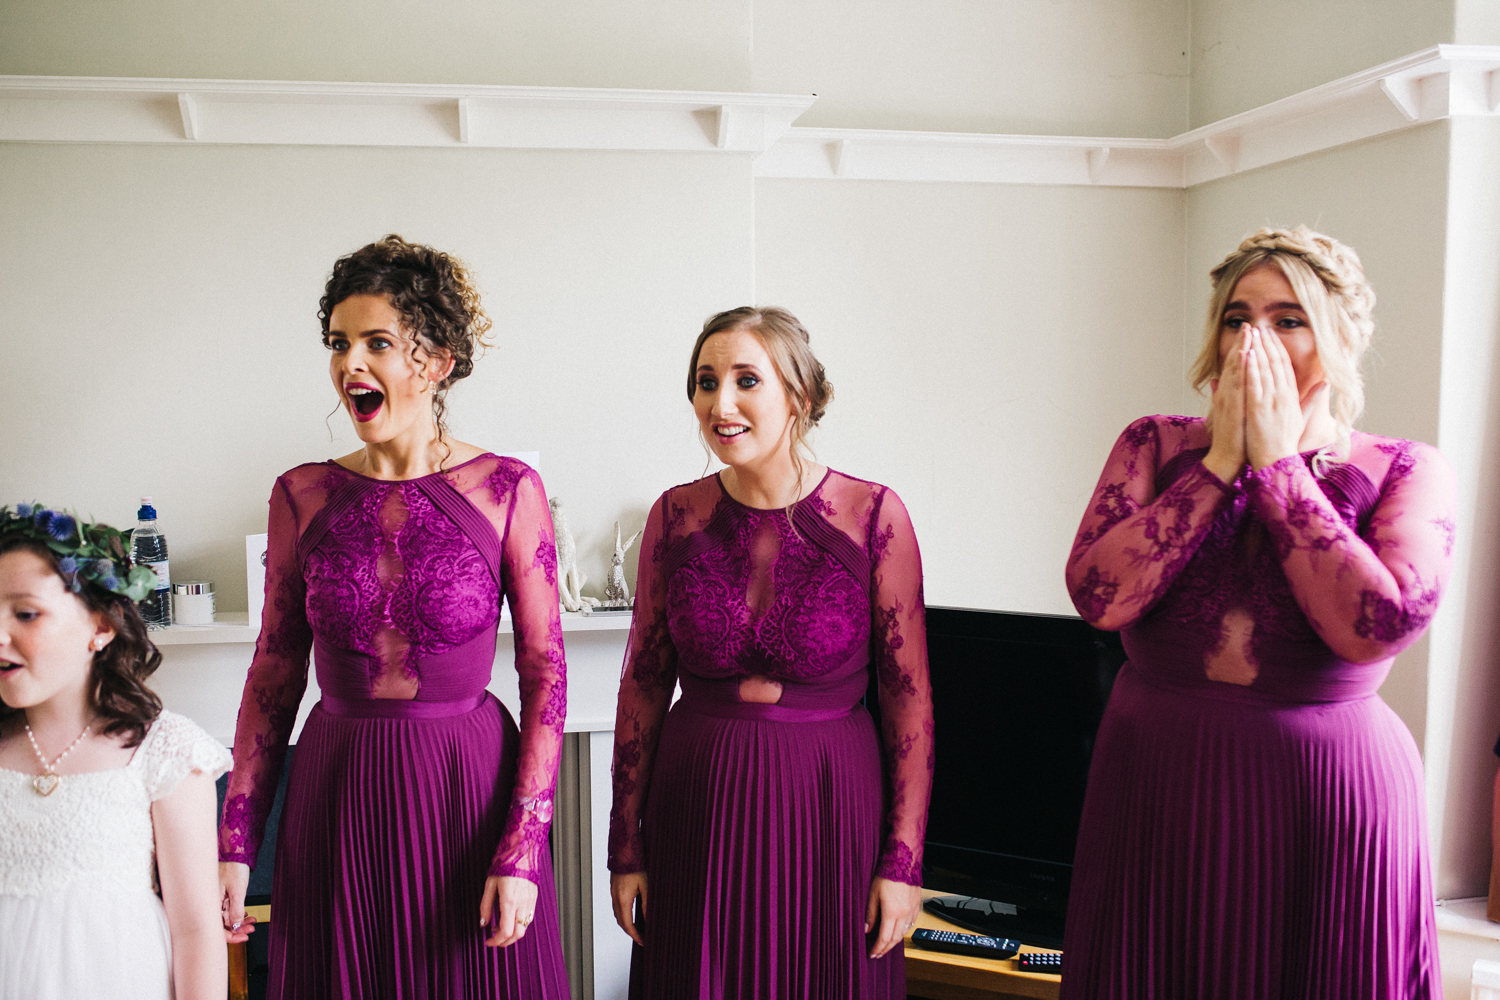 bridesmaids look amazed when seeing the bride in her dress for the first time